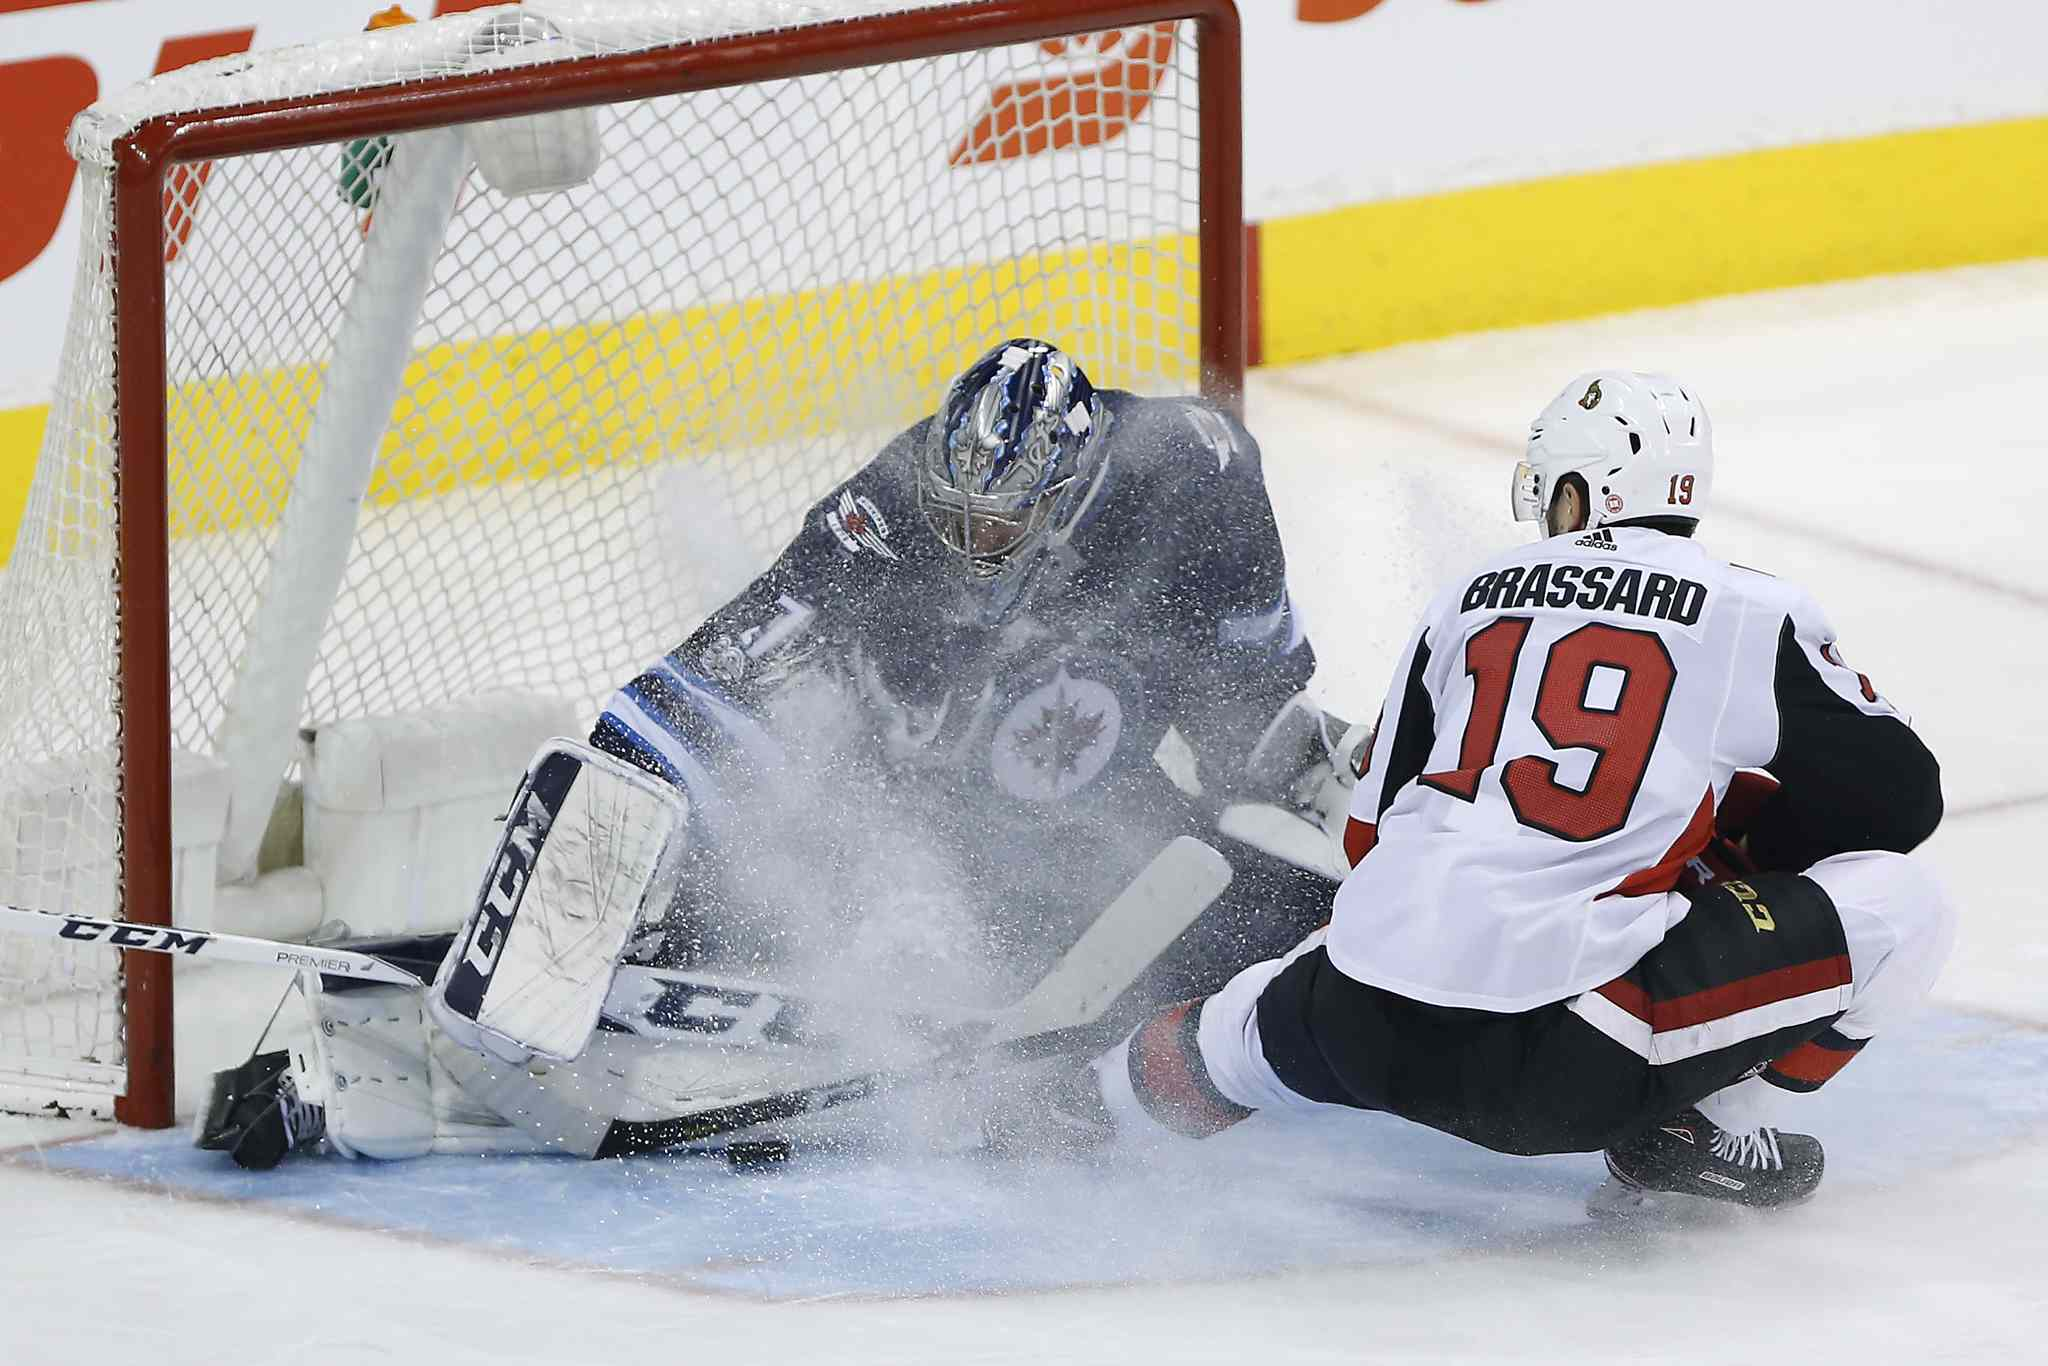 JOHN WOODS / WINNIPEG FREE PRESS</p><p>Winnipeg Jets goaltender Connor Hellebuyck (37) stops the breakaway attempt by Ottawa Senators&#39; Derick Brassard (19) during third period NHL action.</p>